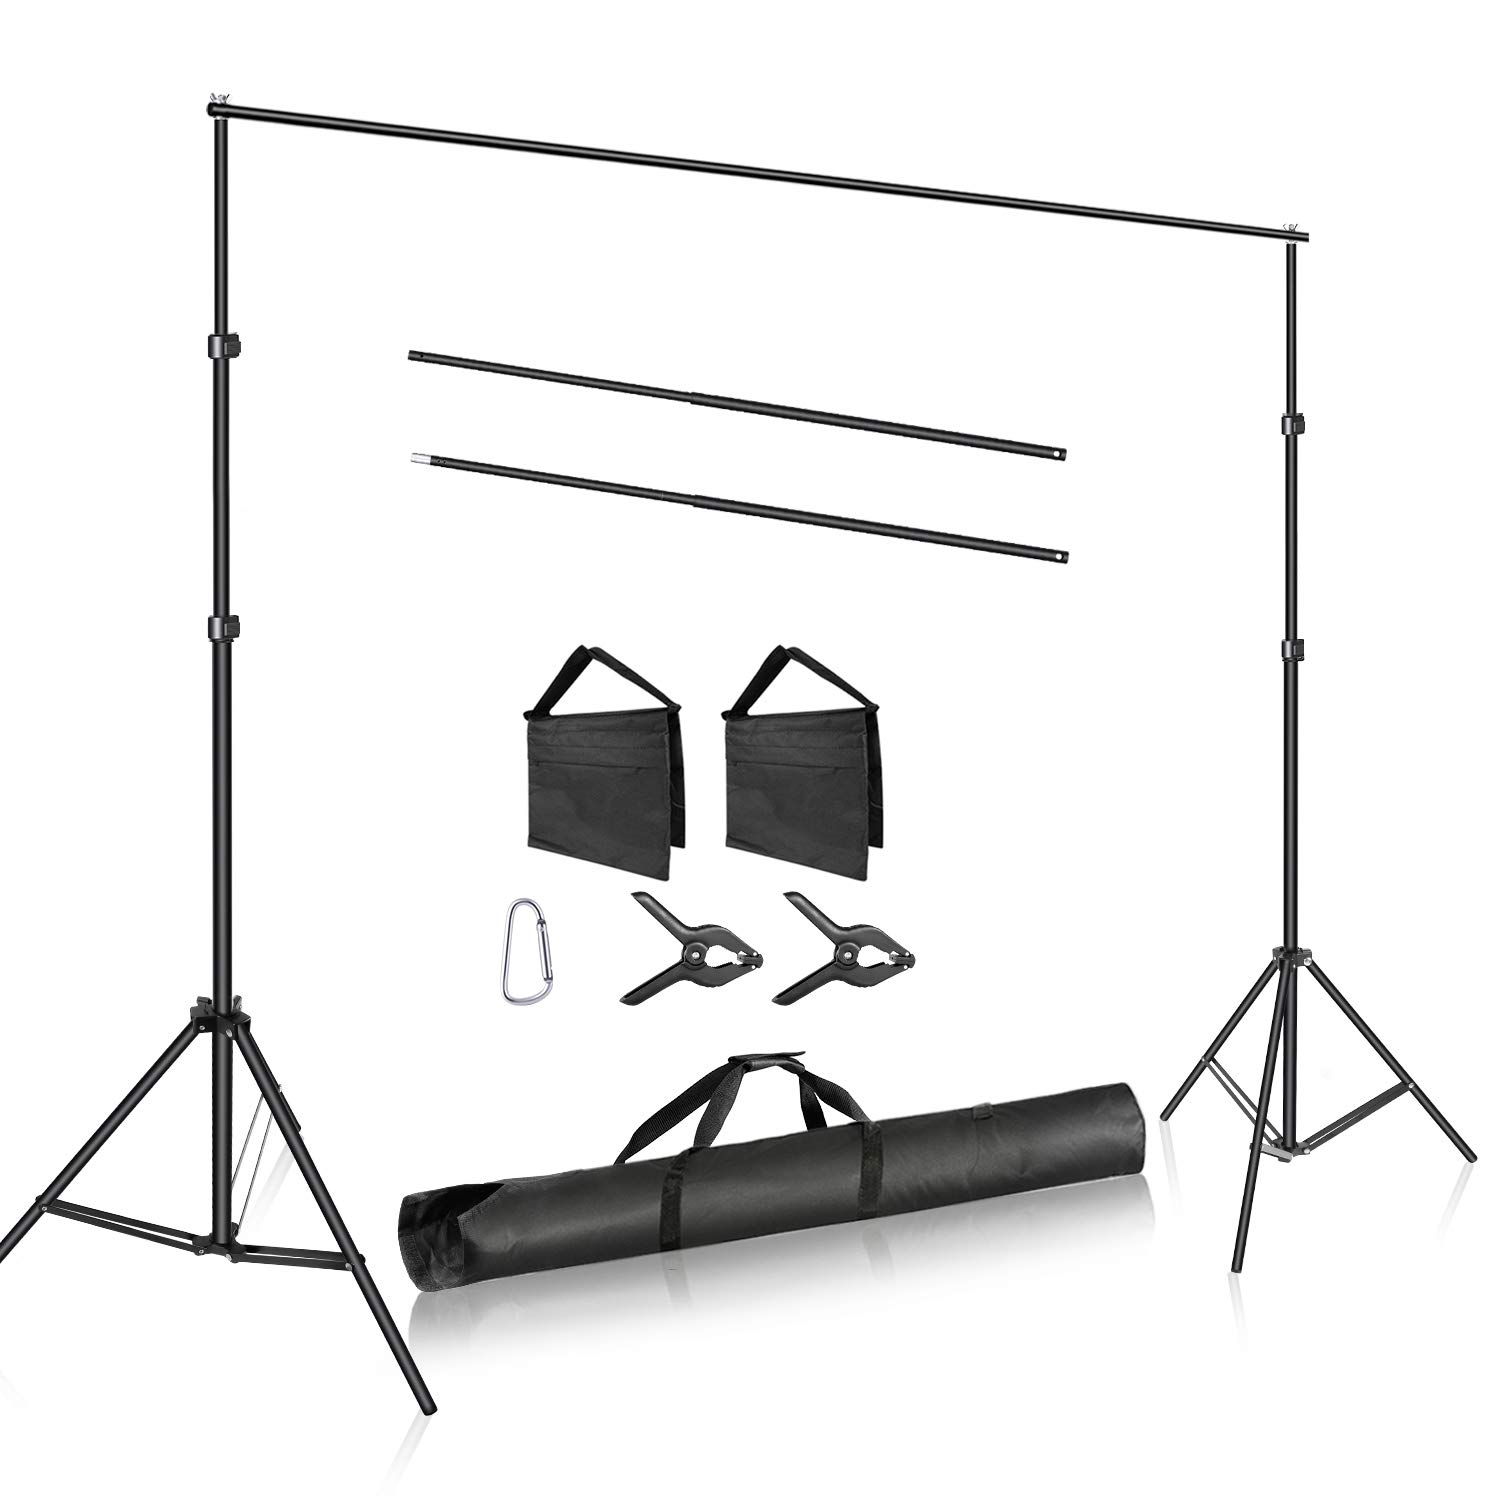 Neewer Photo Studio Adjustable 10ft/3m Wide Cross Bar 6.6ft/2m Tall Background Stand Backdrop Support System with 2 Backdrop Clamps, 2 Sandbags and Carry Bag for Portrait Product Video Shooting